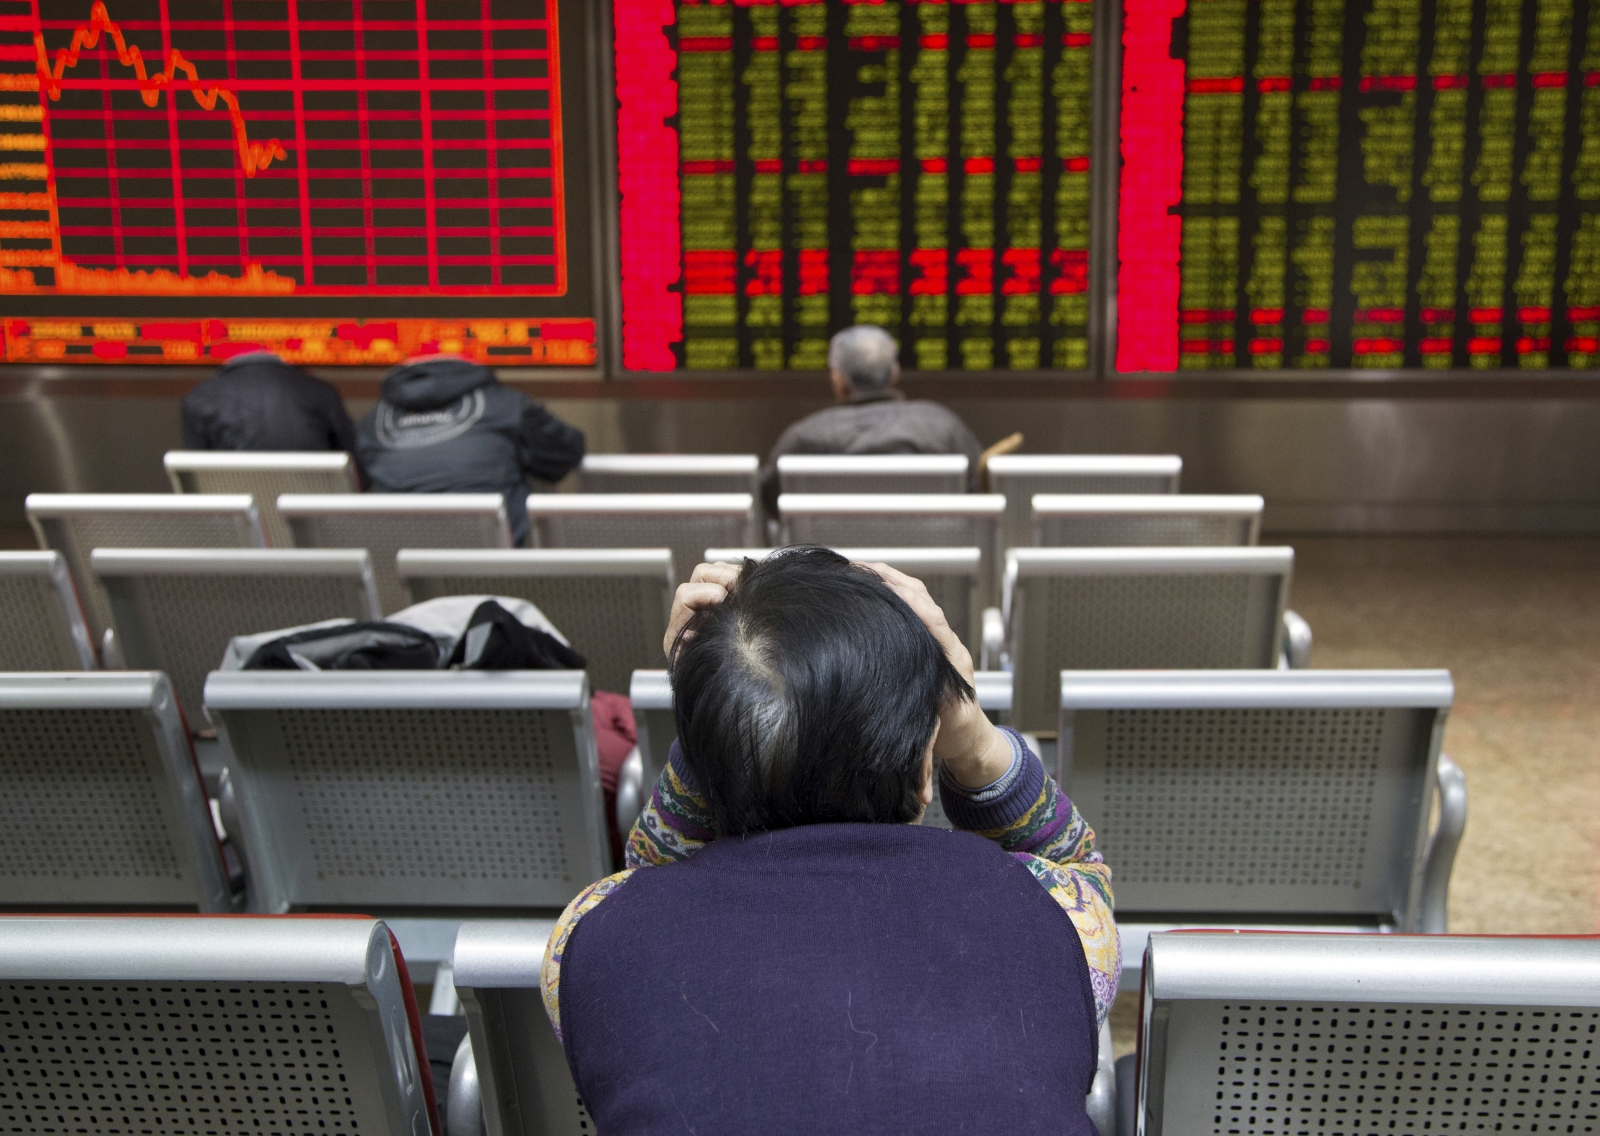 Asian markets: Shanghai Composite slips on Fed rate hike fears while oil prices slip